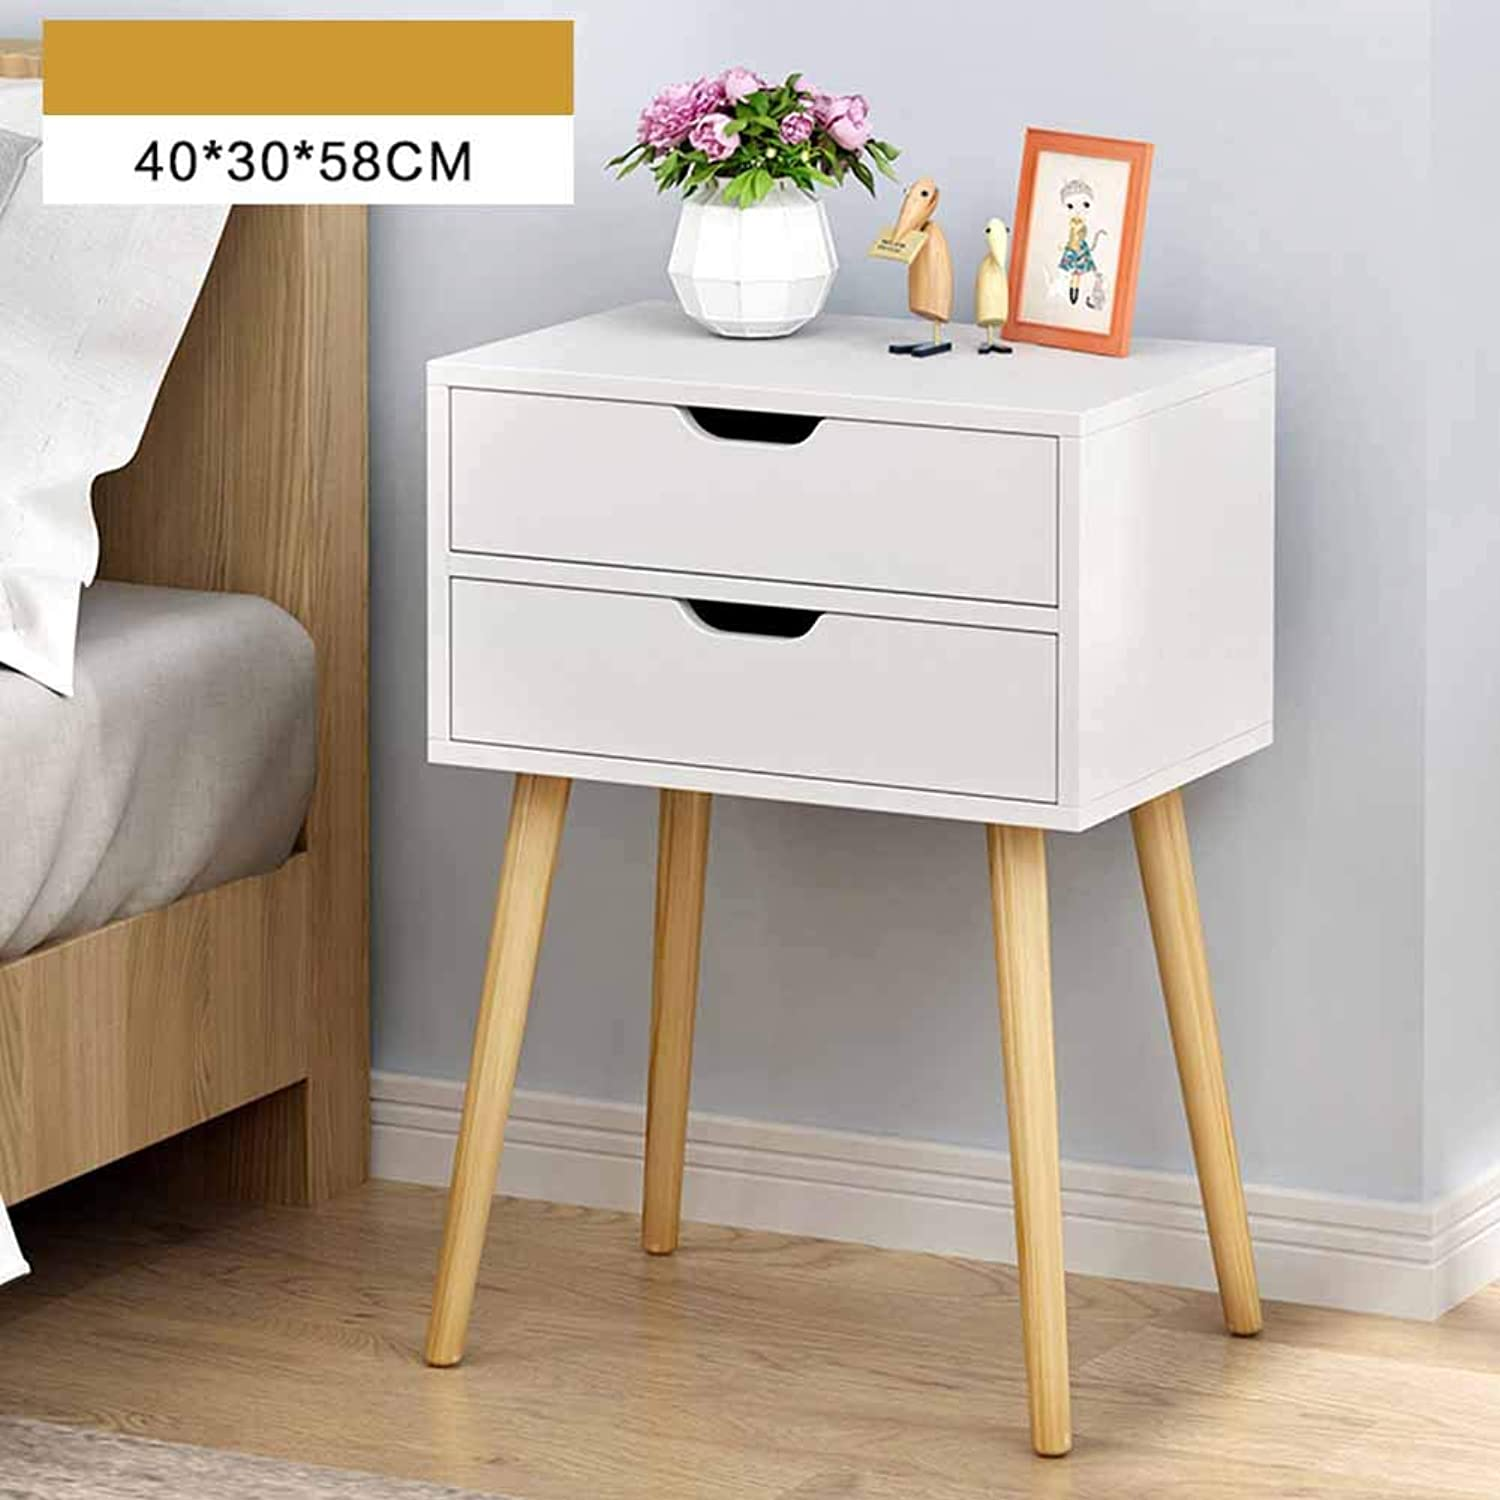 Coffee Table Lockers, Solid Wood Legs Double Drawer Invisible Handle Multi-Storey Storage Shelf Suitable for Living Room Bedroom 2 Colours (color   White)